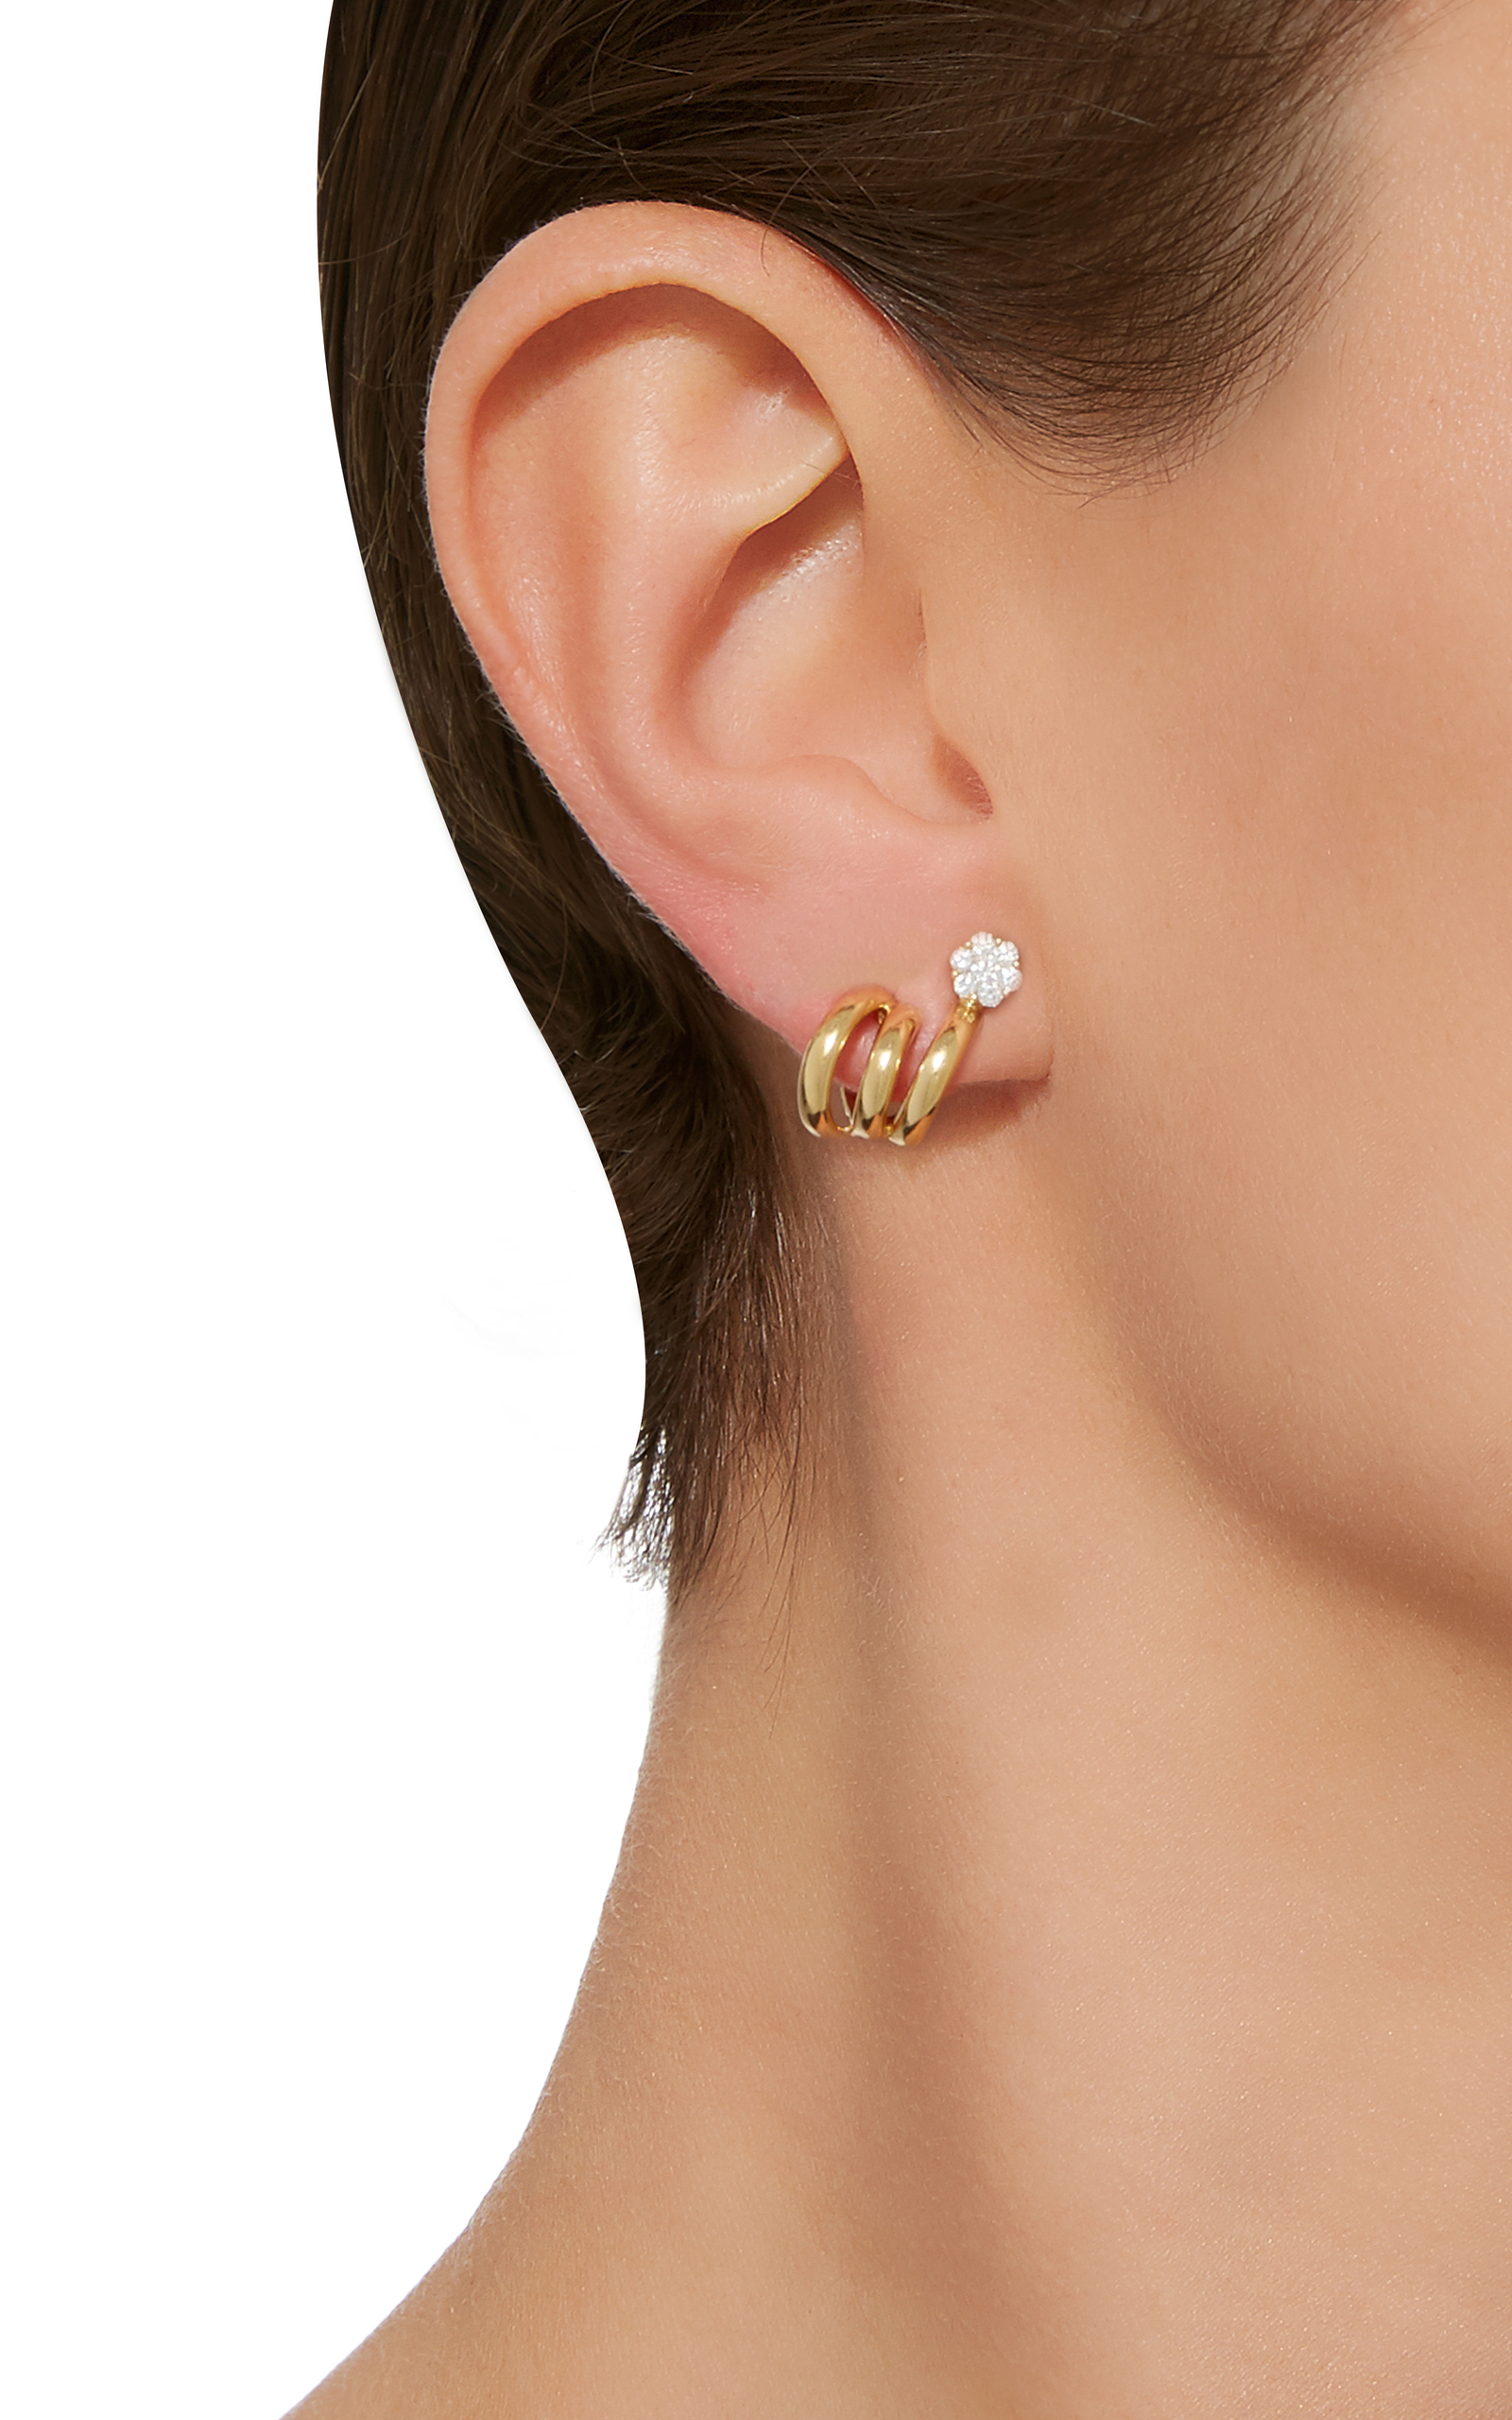 resin fashion for beaded in on earrings accessories flower stud women white new large jewelry from item camellia